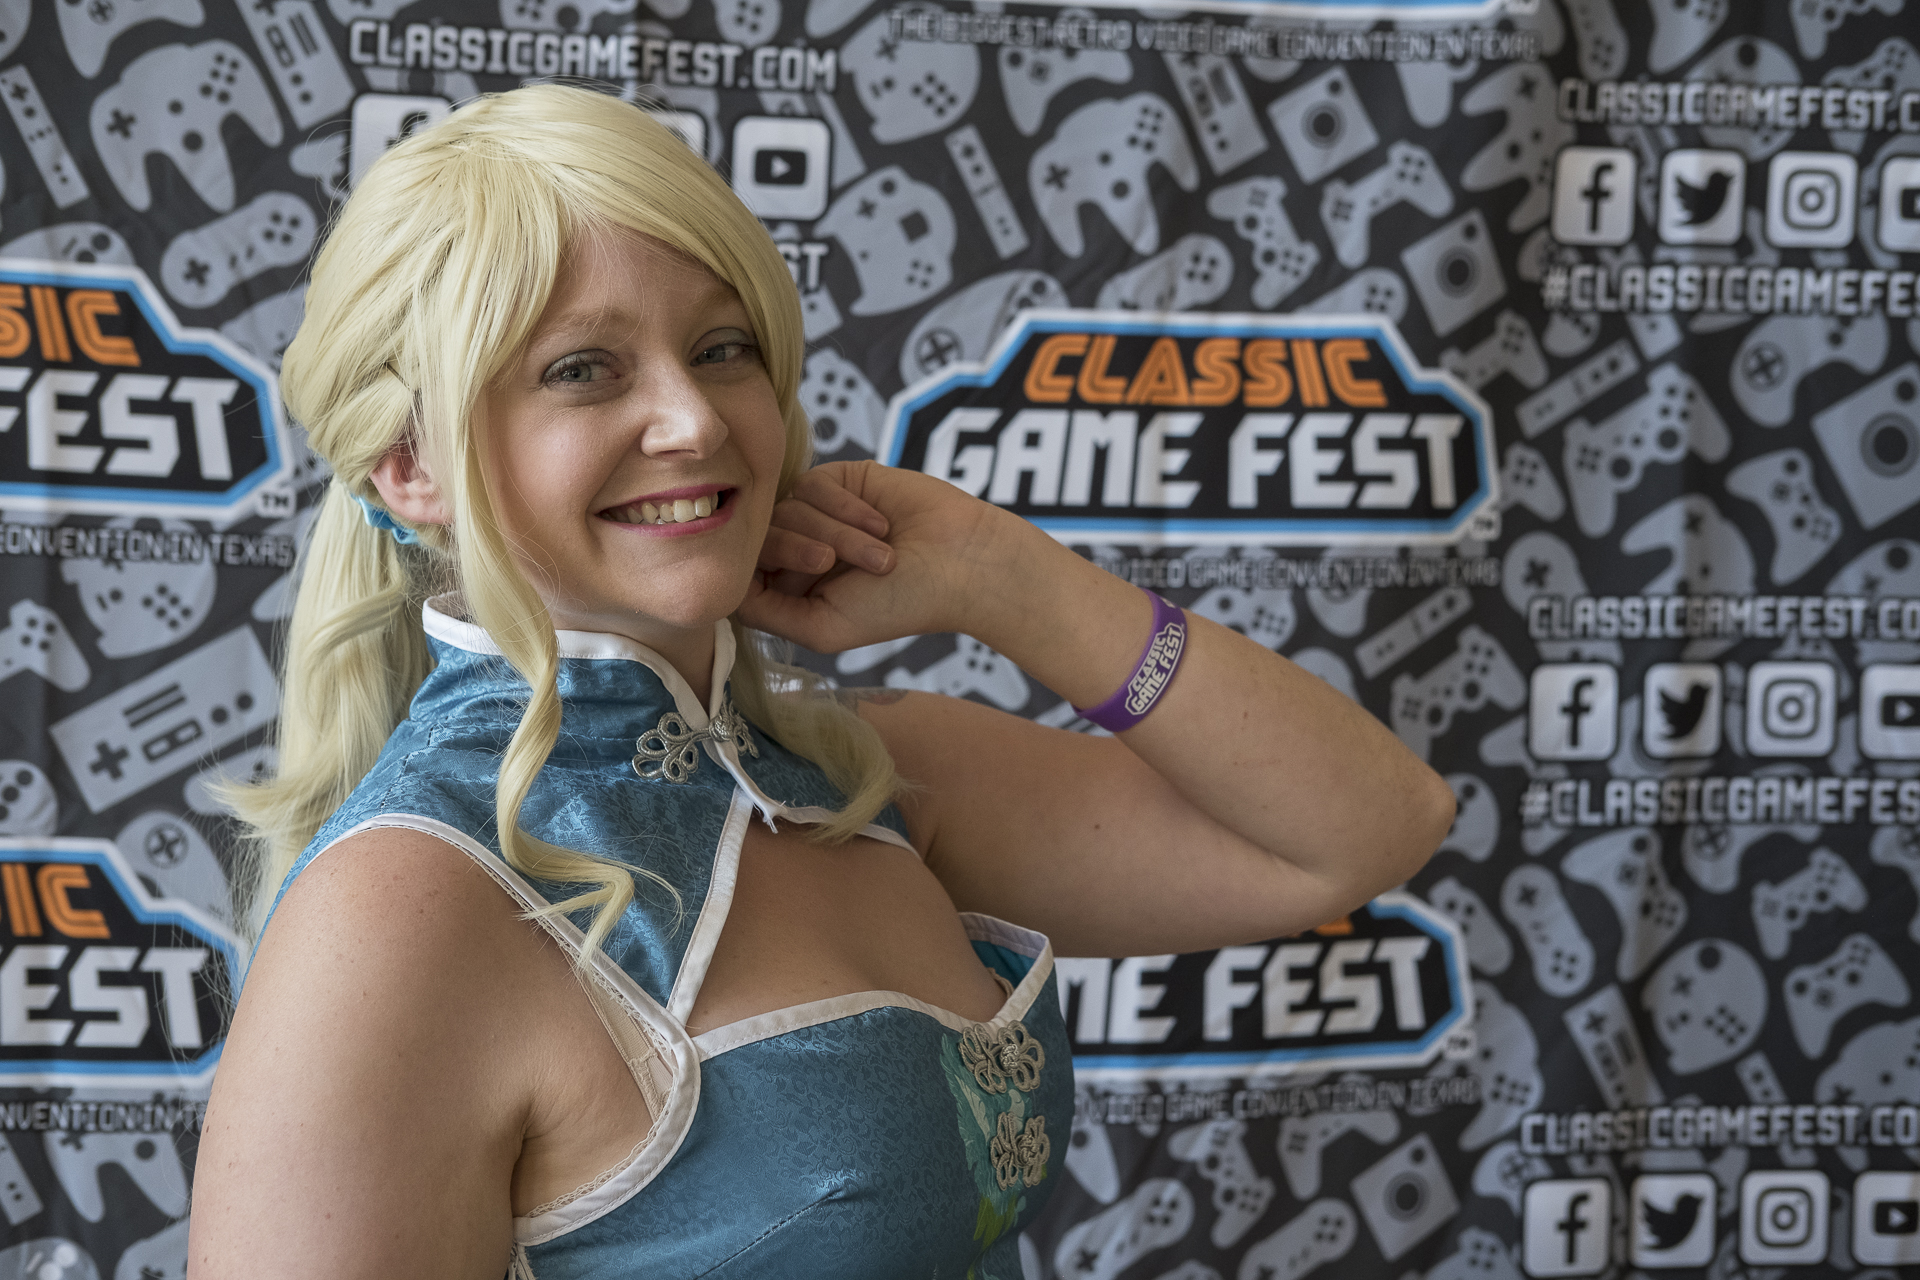 Allybelle Cosplay in Eli Ayase cosplay at Classic Game Fest